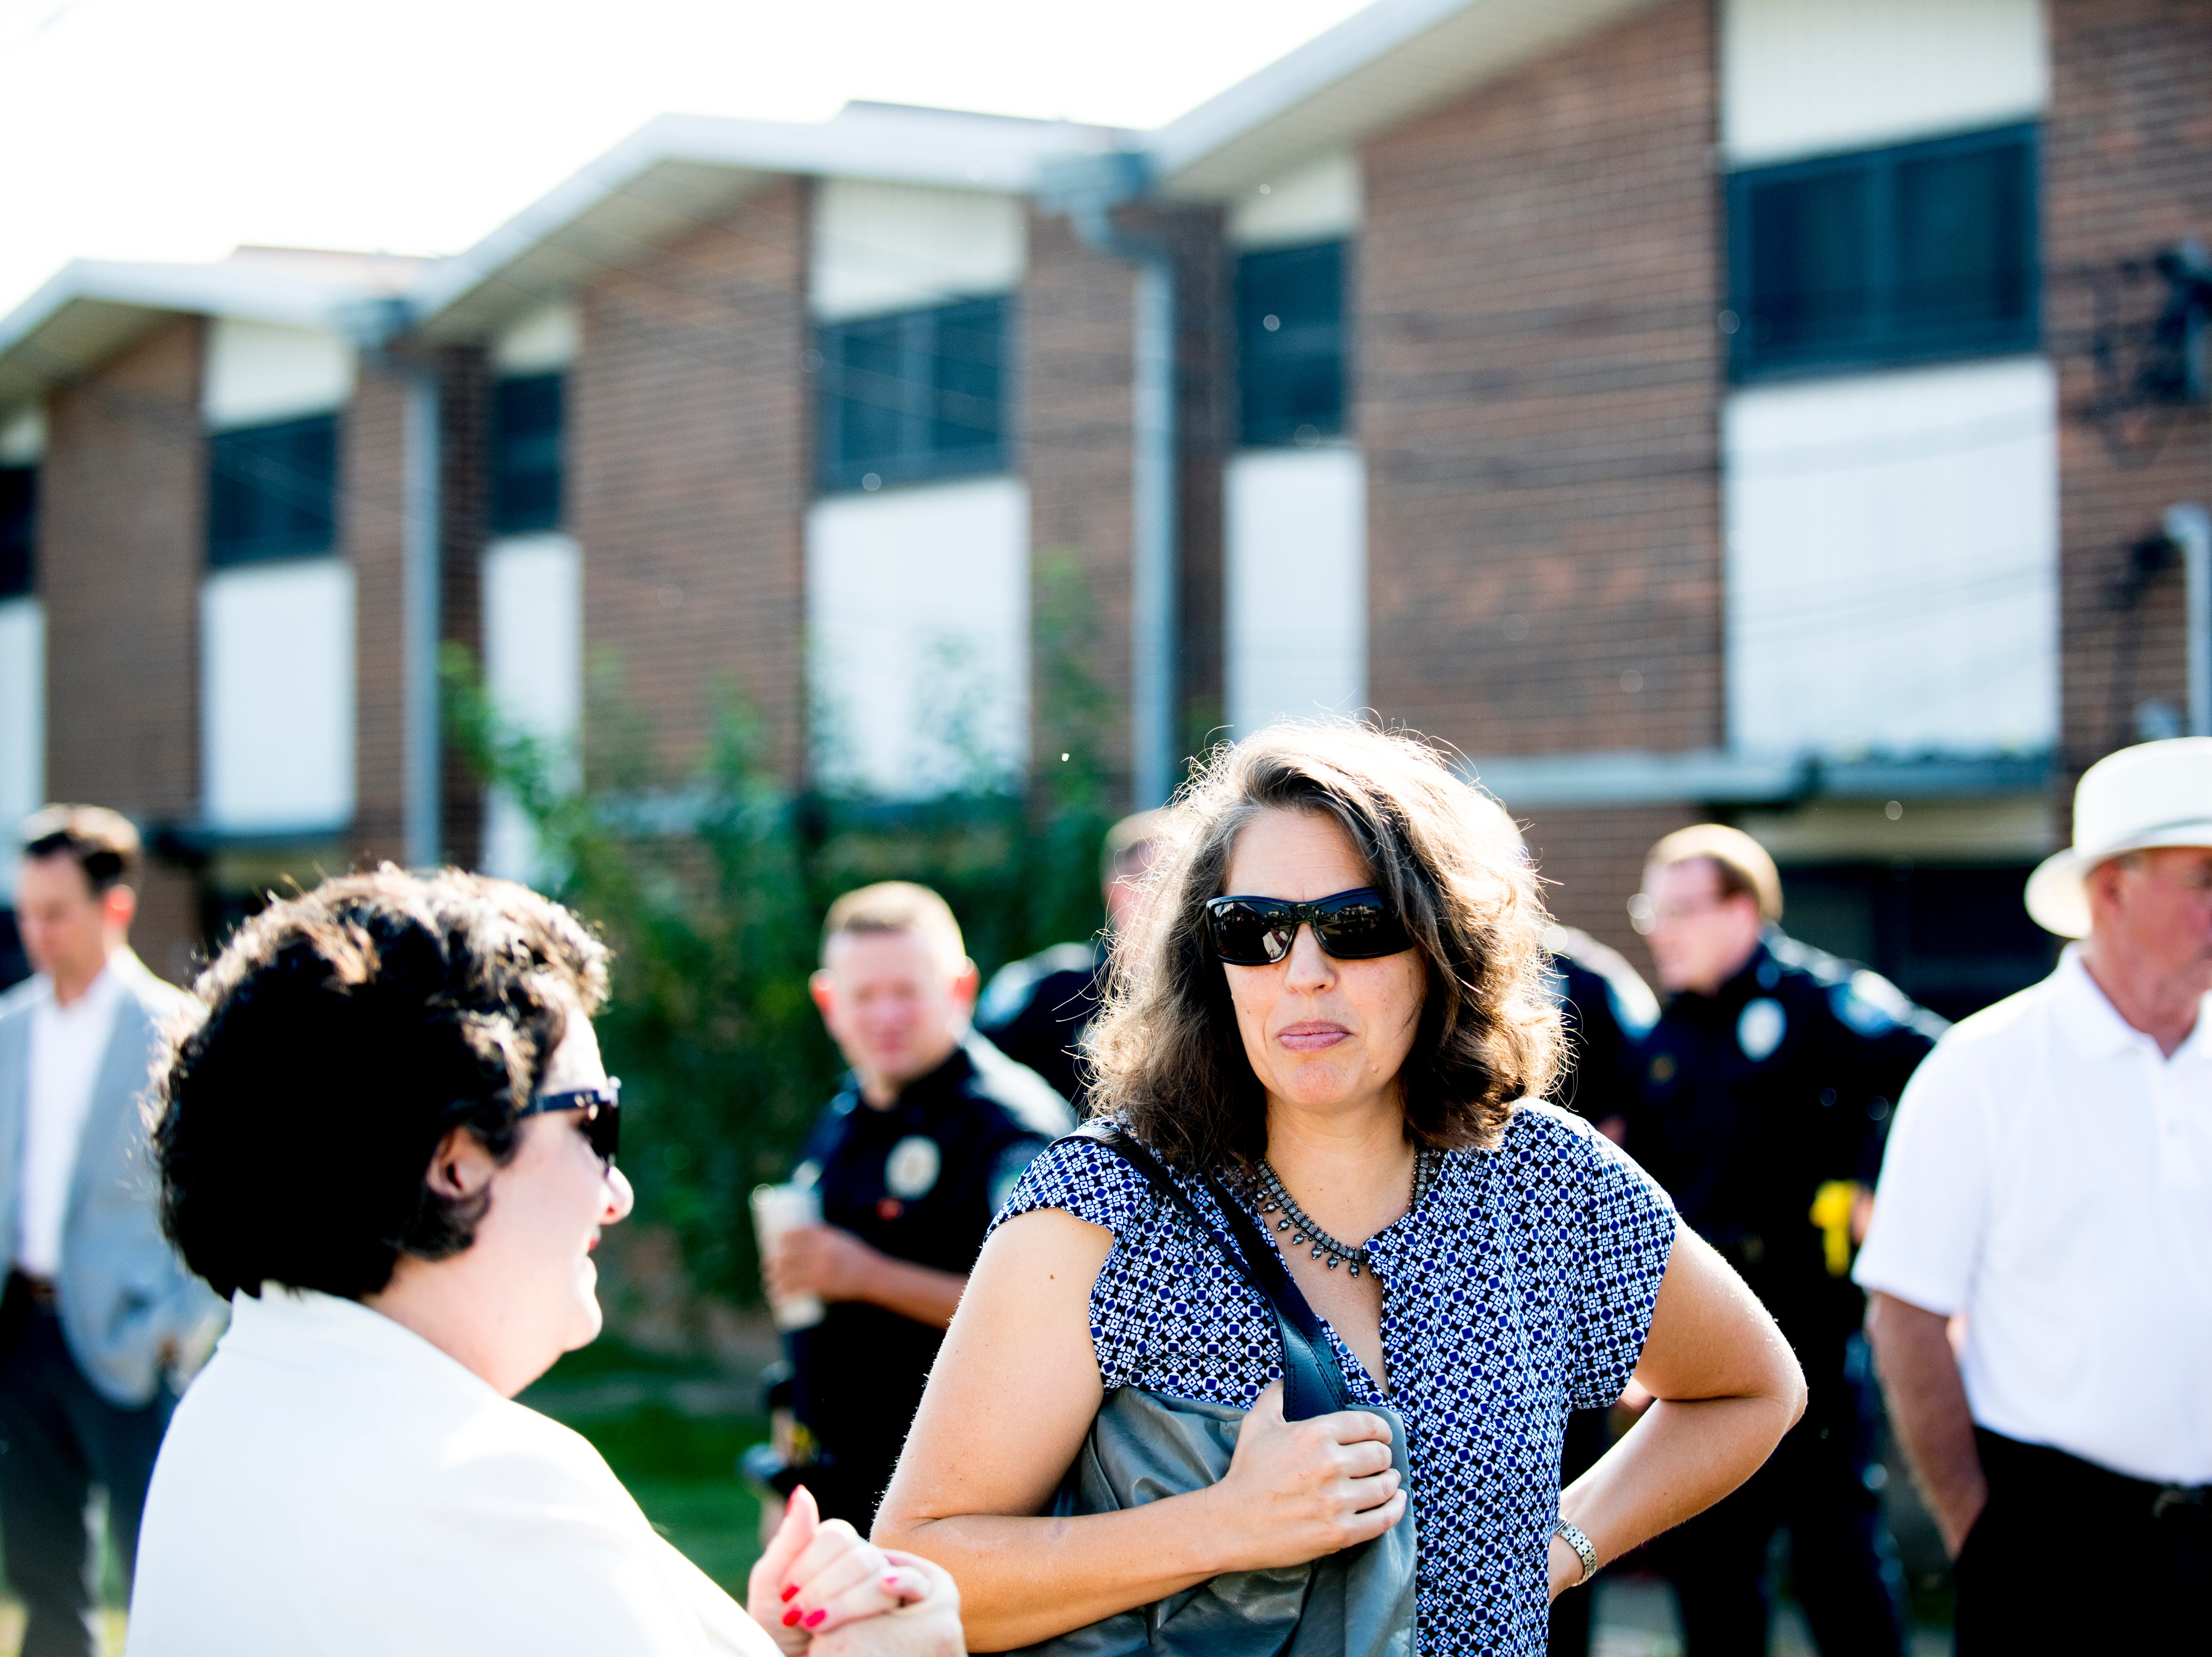 Knoxville mayoral candidate Indya Kincannon attends the Five Points Phase 2 ribbon cutting ceremony in Knoxville, Tennessee on Wednesday, September 19, 2018. The 10-building, 84-unit affordable housing complex has been part of Mayor Rogero's focus on affordable housing.